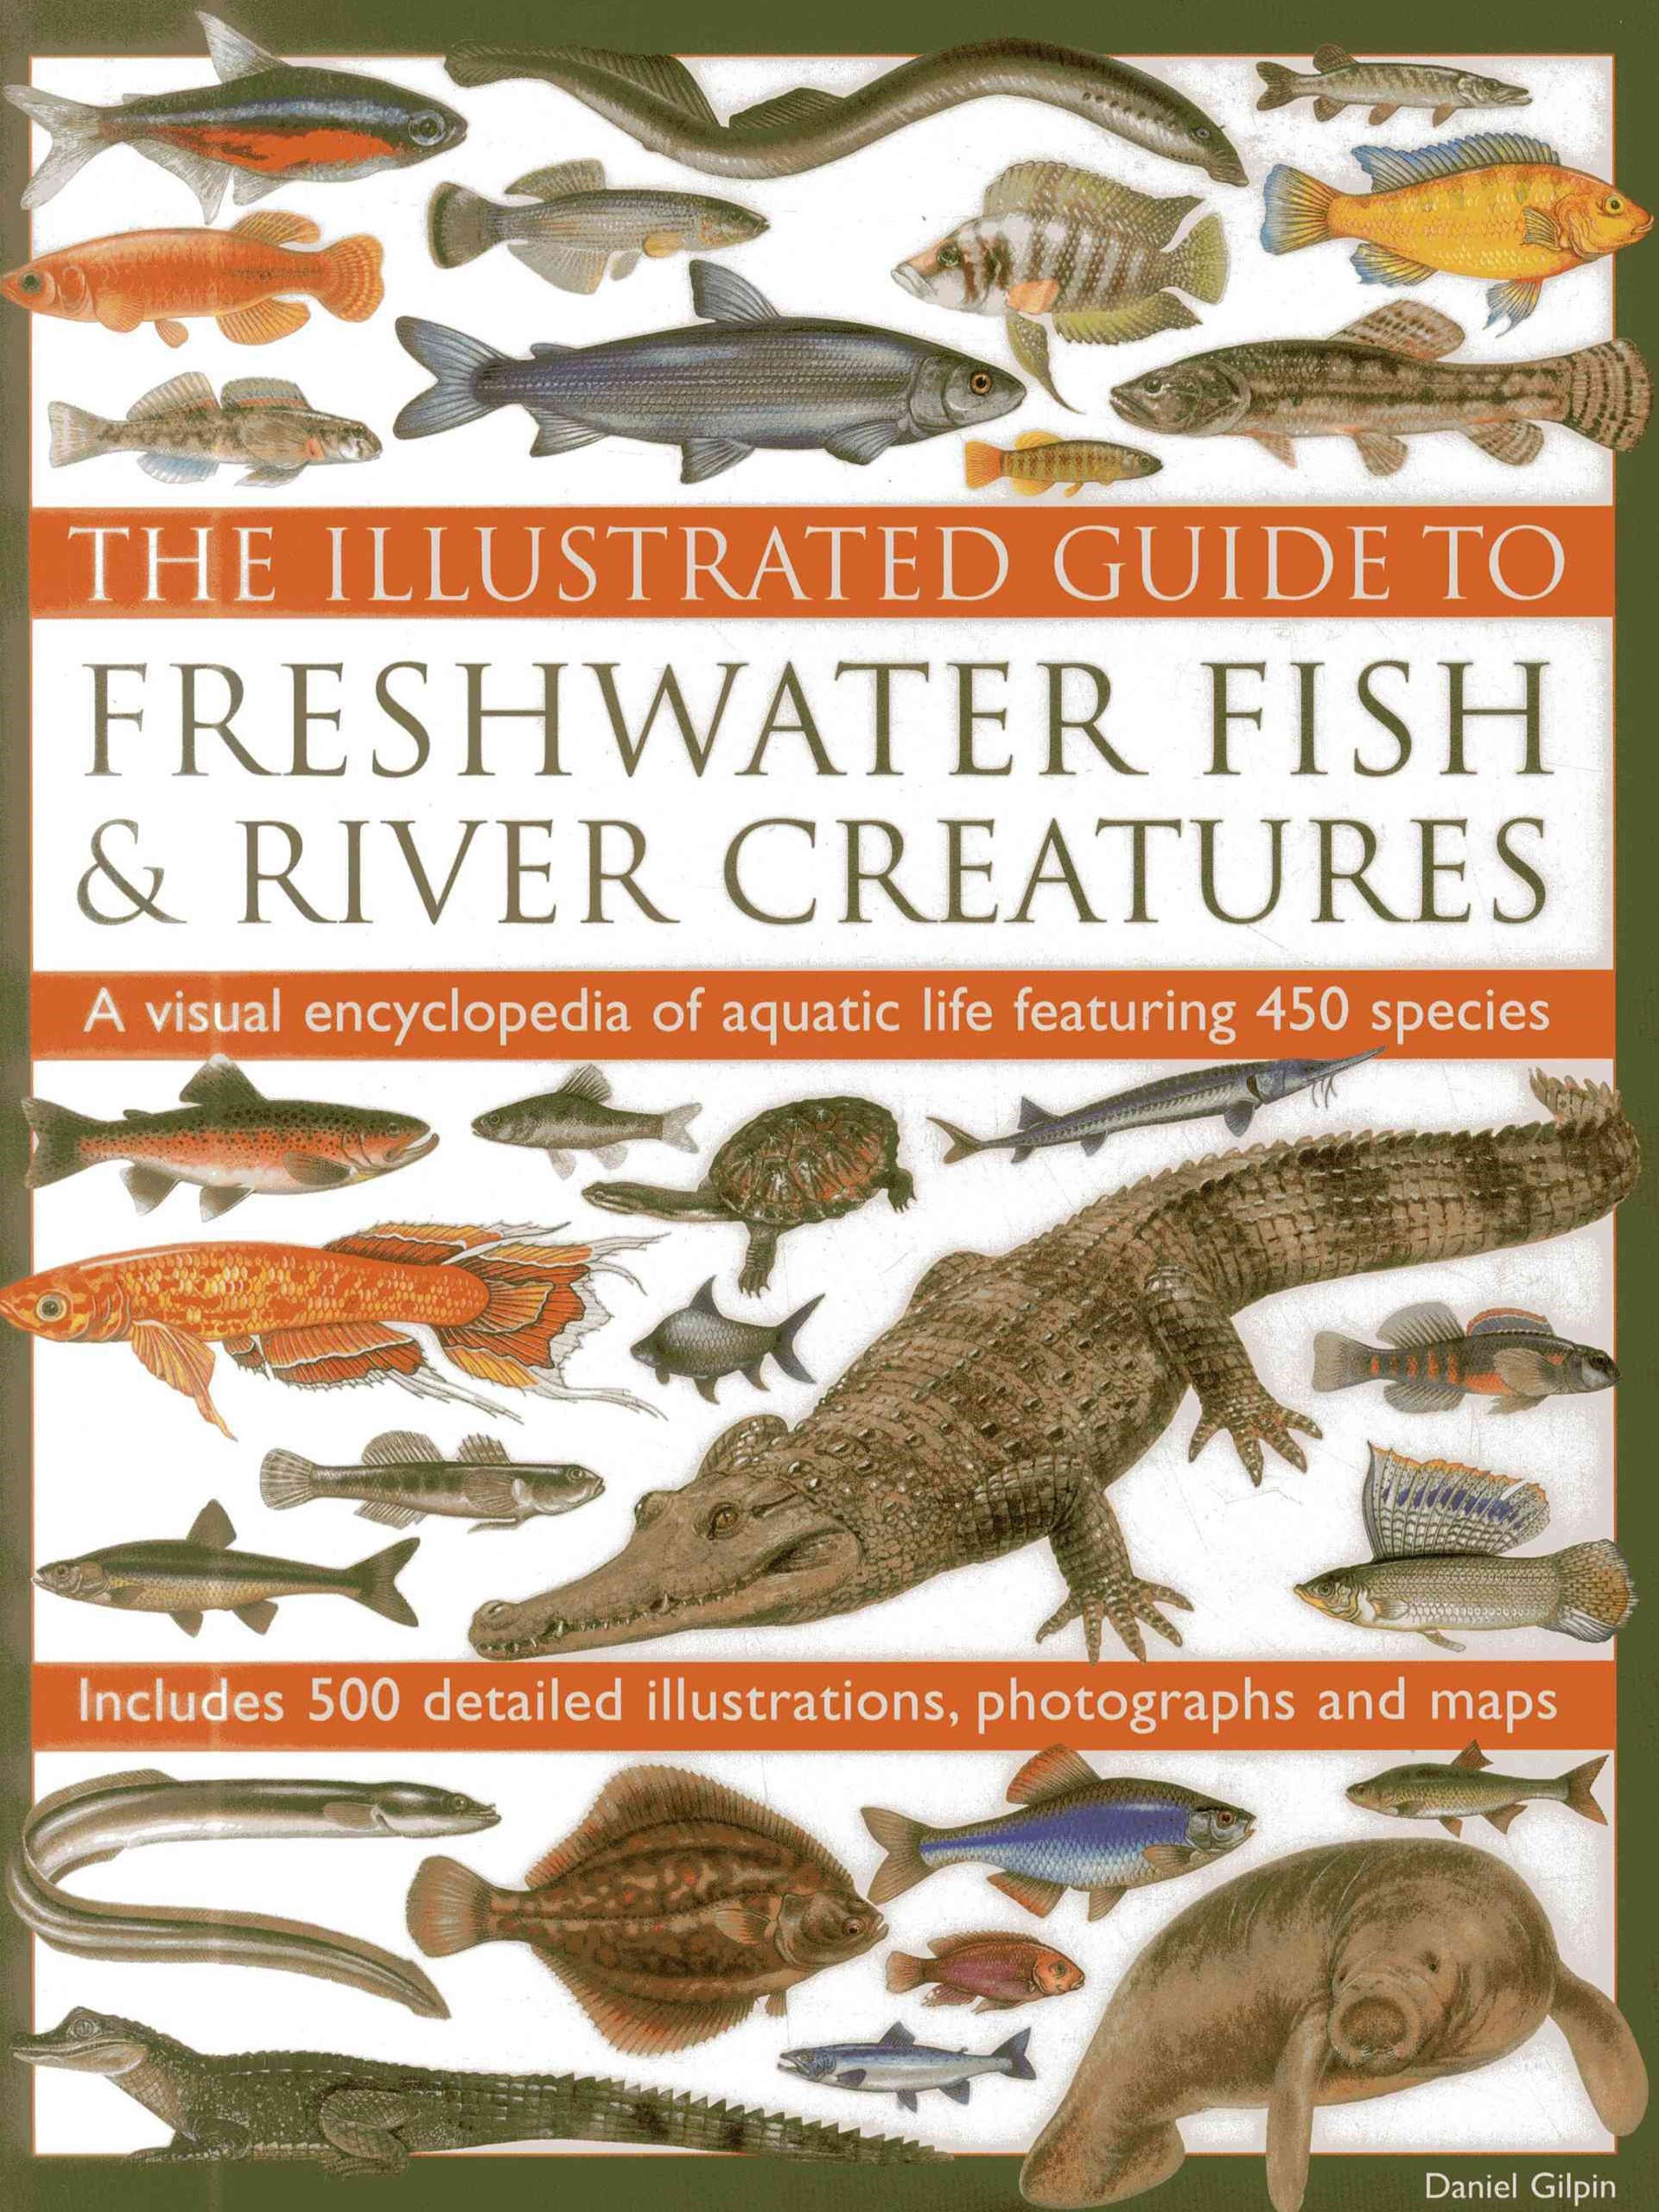 Illustrated Guide to Freshwater Fish & River Creatures